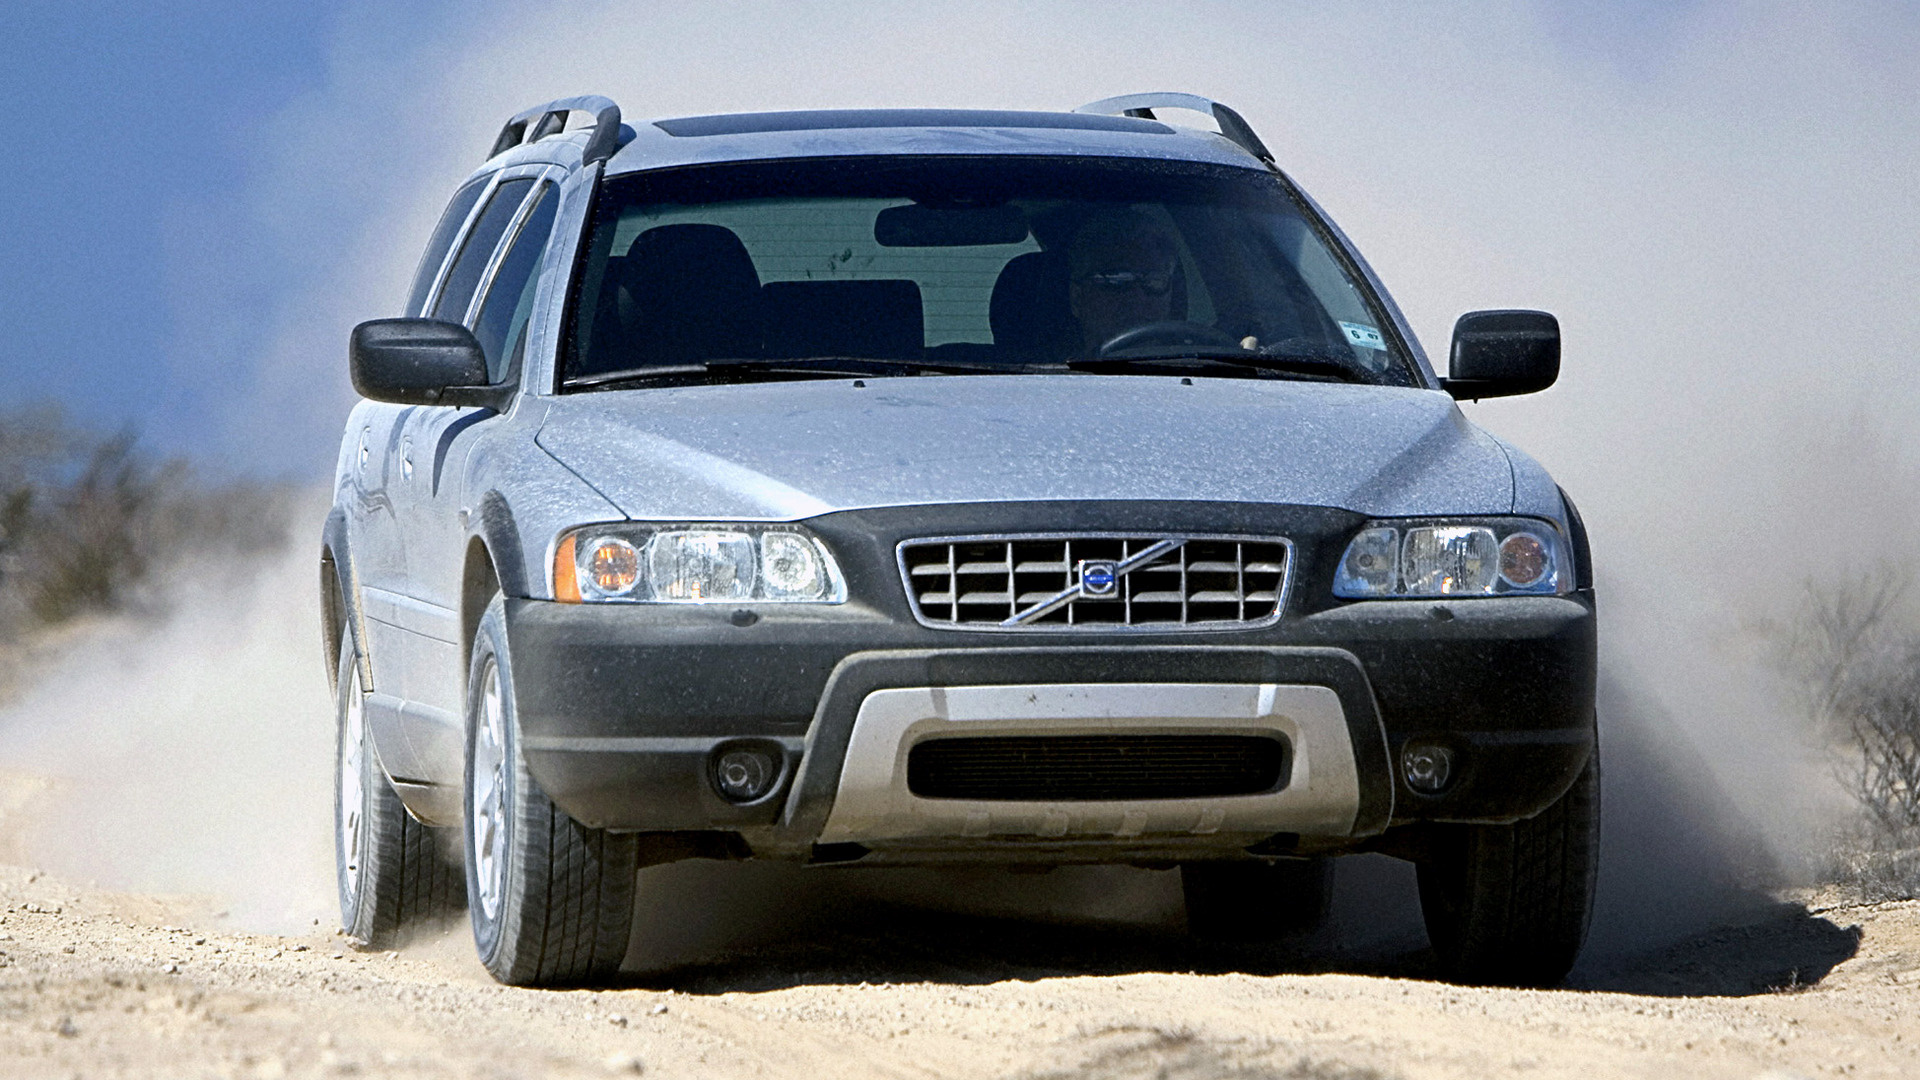 2004 Volvo XC70 US   Wallpapers and HD Images Car Pixel 1920x1080